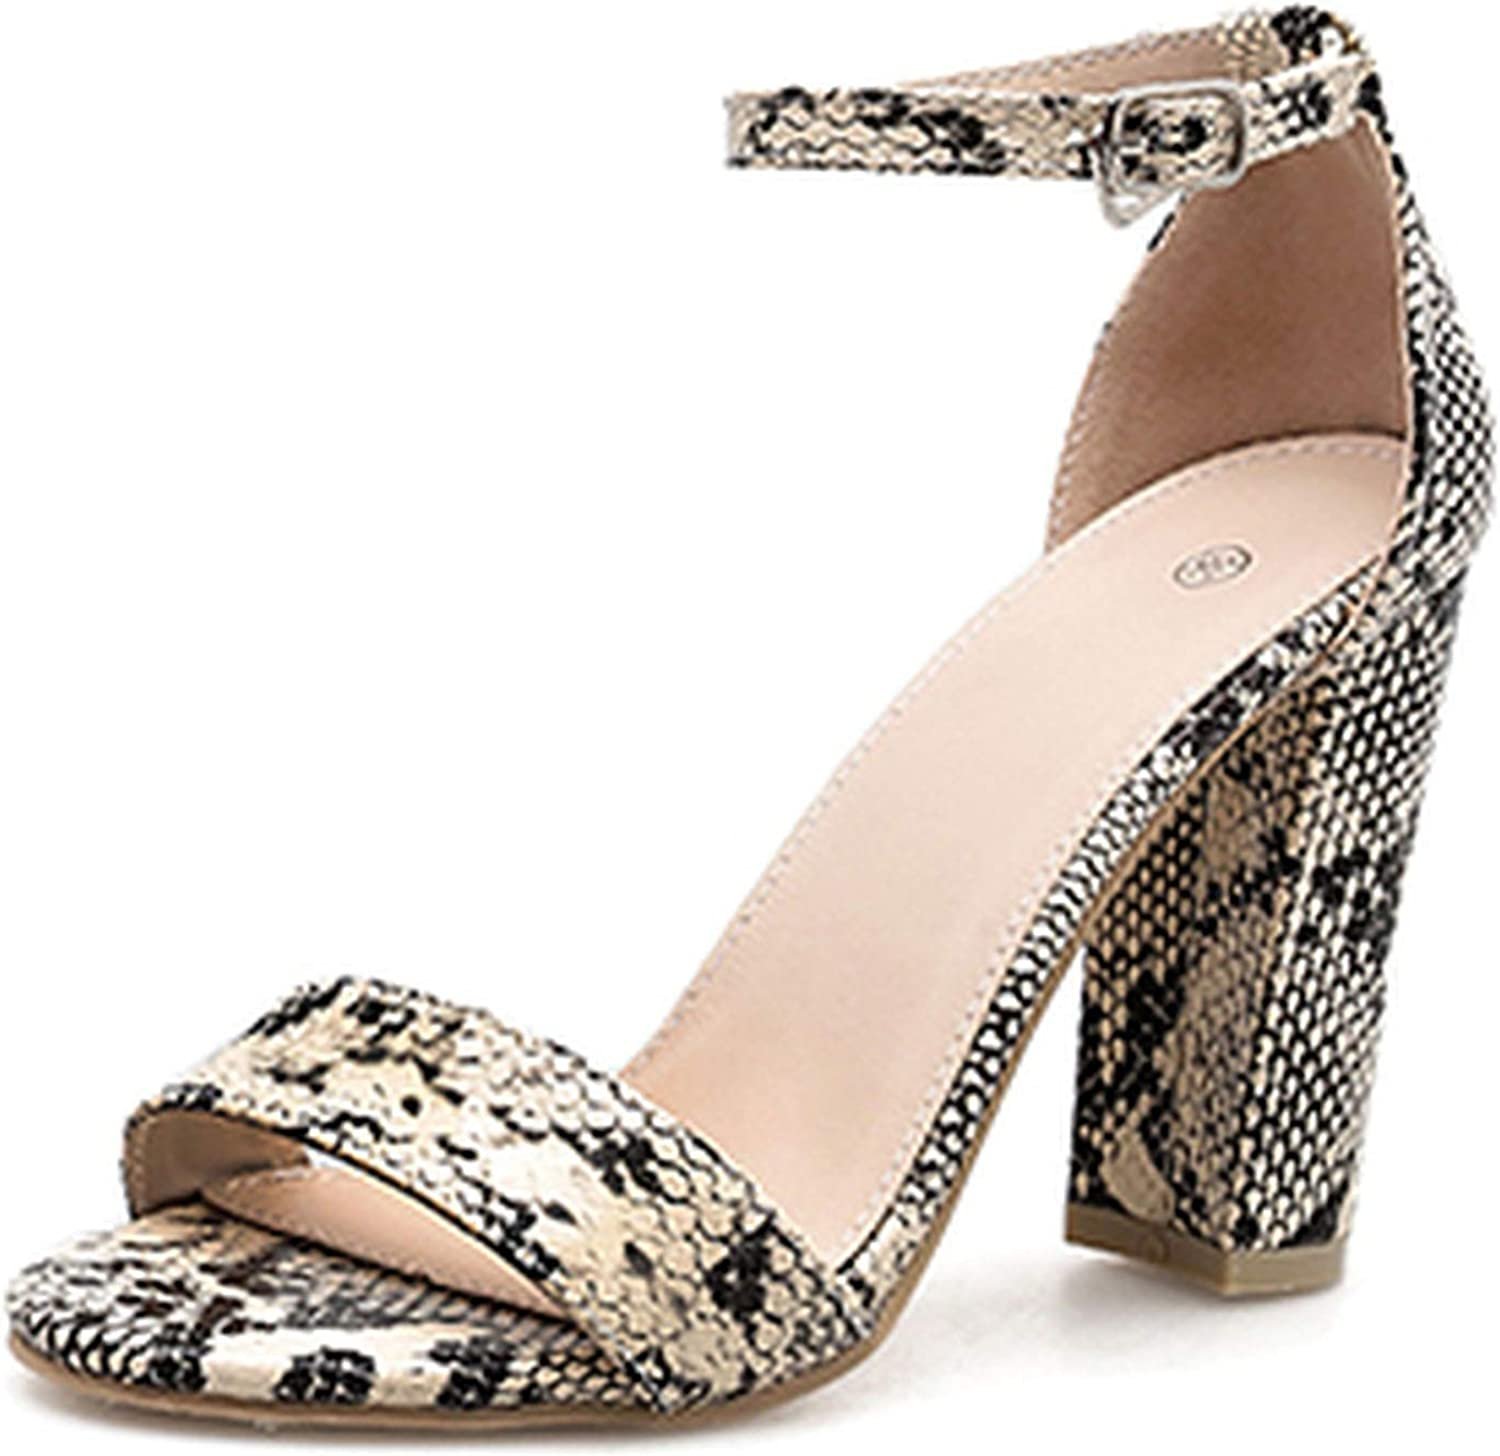 HuangKang 2019 Summer Fashion High Heels 10.5Cm Female Strappy Chunky Peep Nude Serpentine Woman shoes